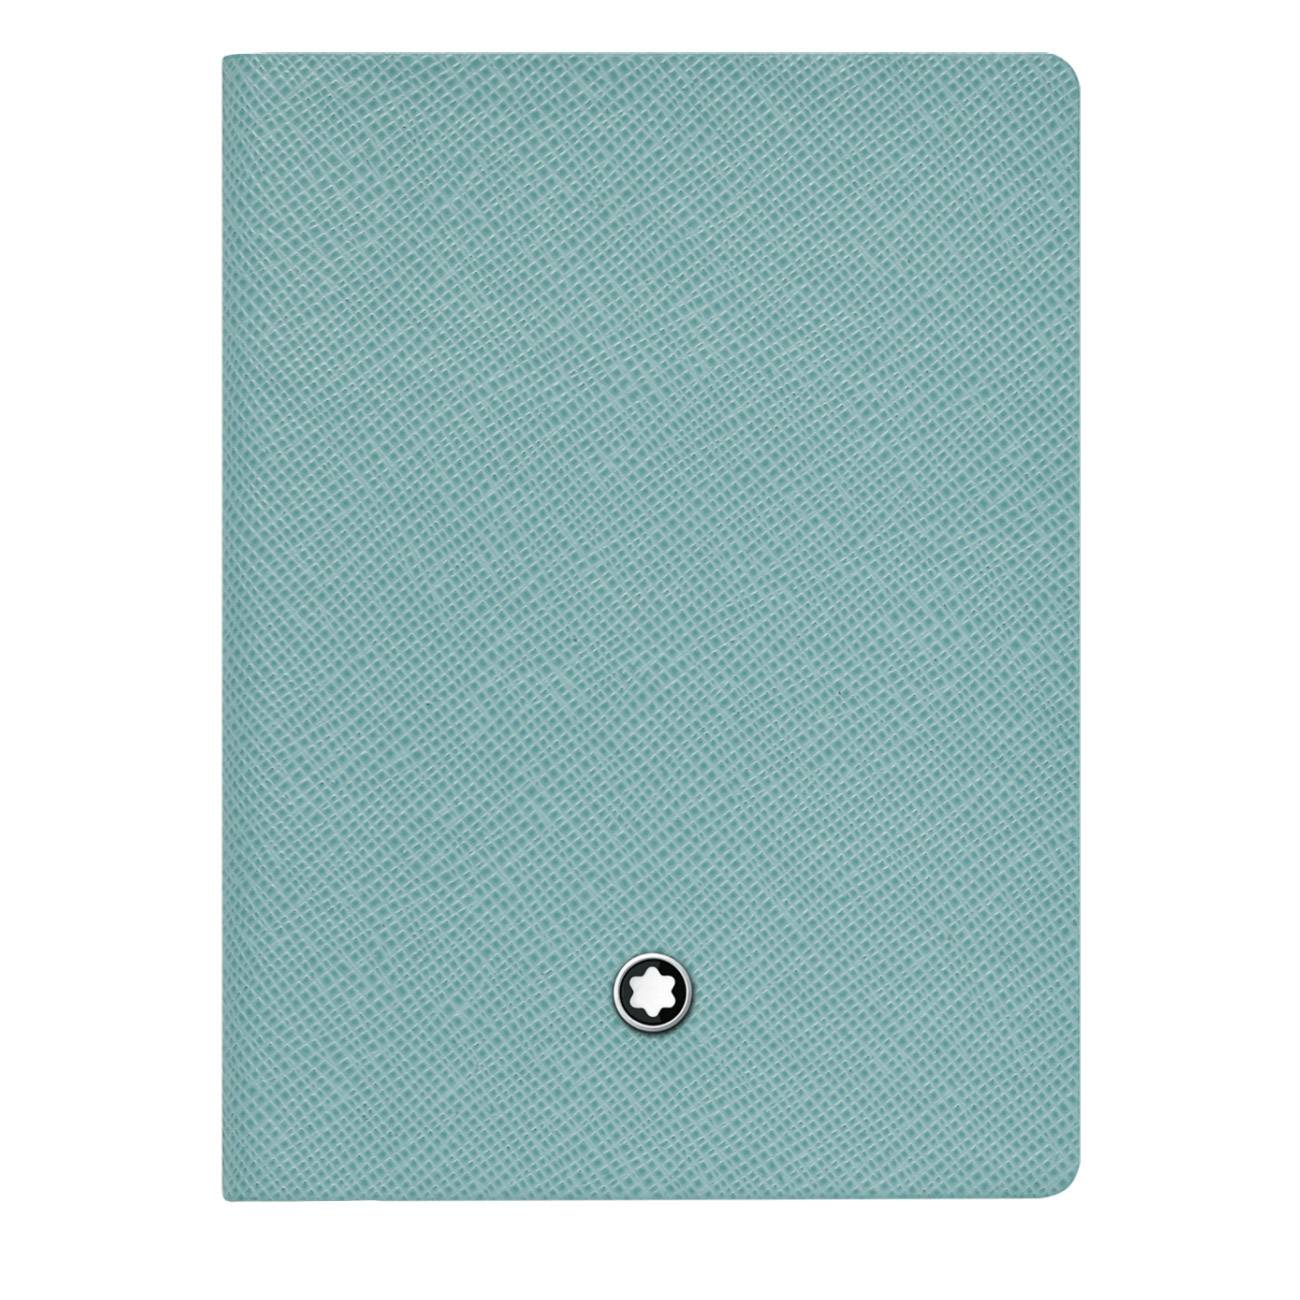 NOTEBOOK MINT LINED - 128 pages 30 Grame